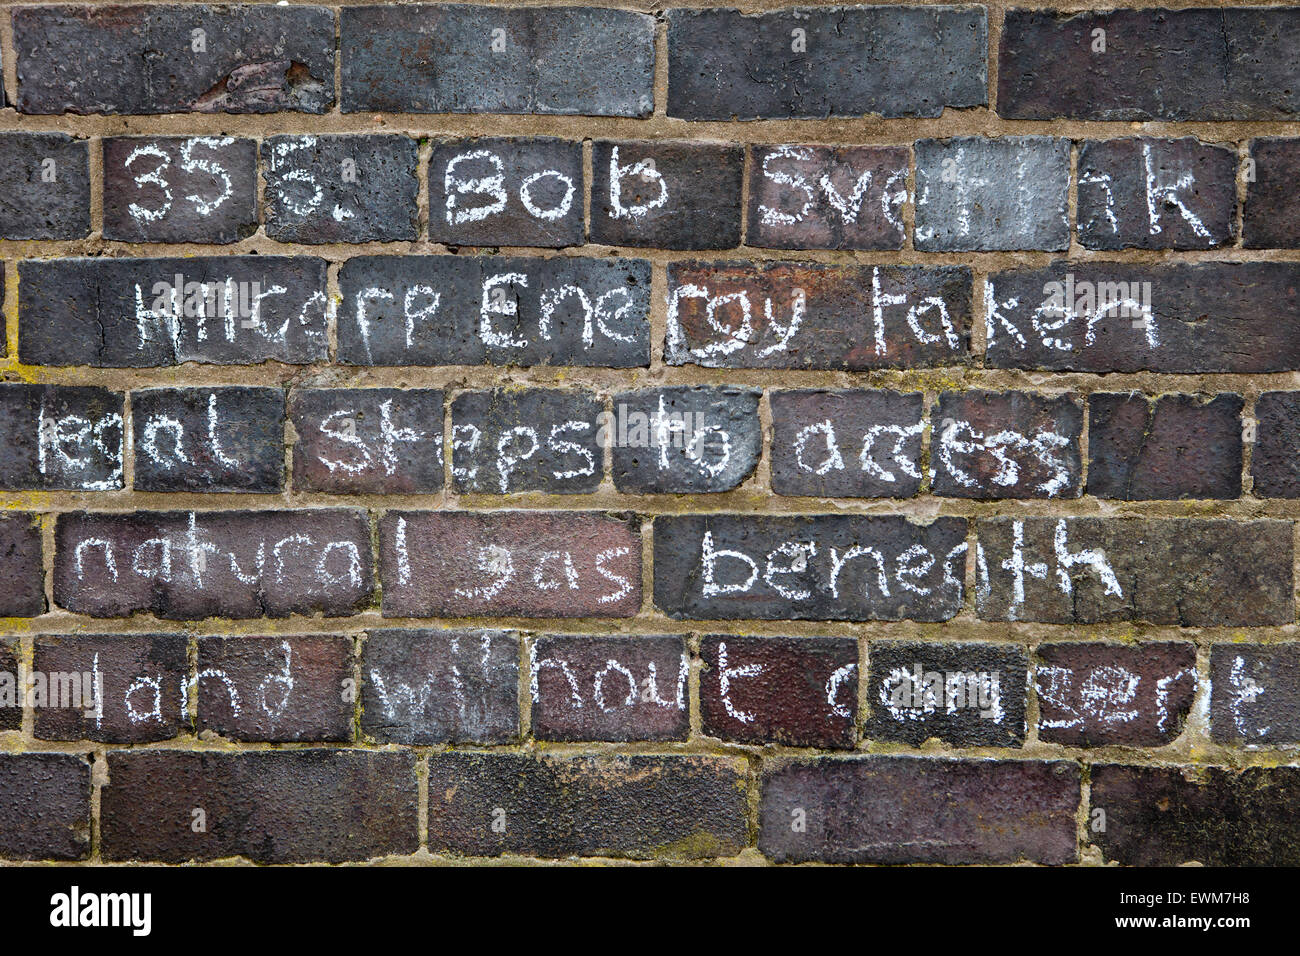 Memorial Wall listing the dead, injured & sick suffering from maladies alleged to be attributable to gas extraction - Stock Image